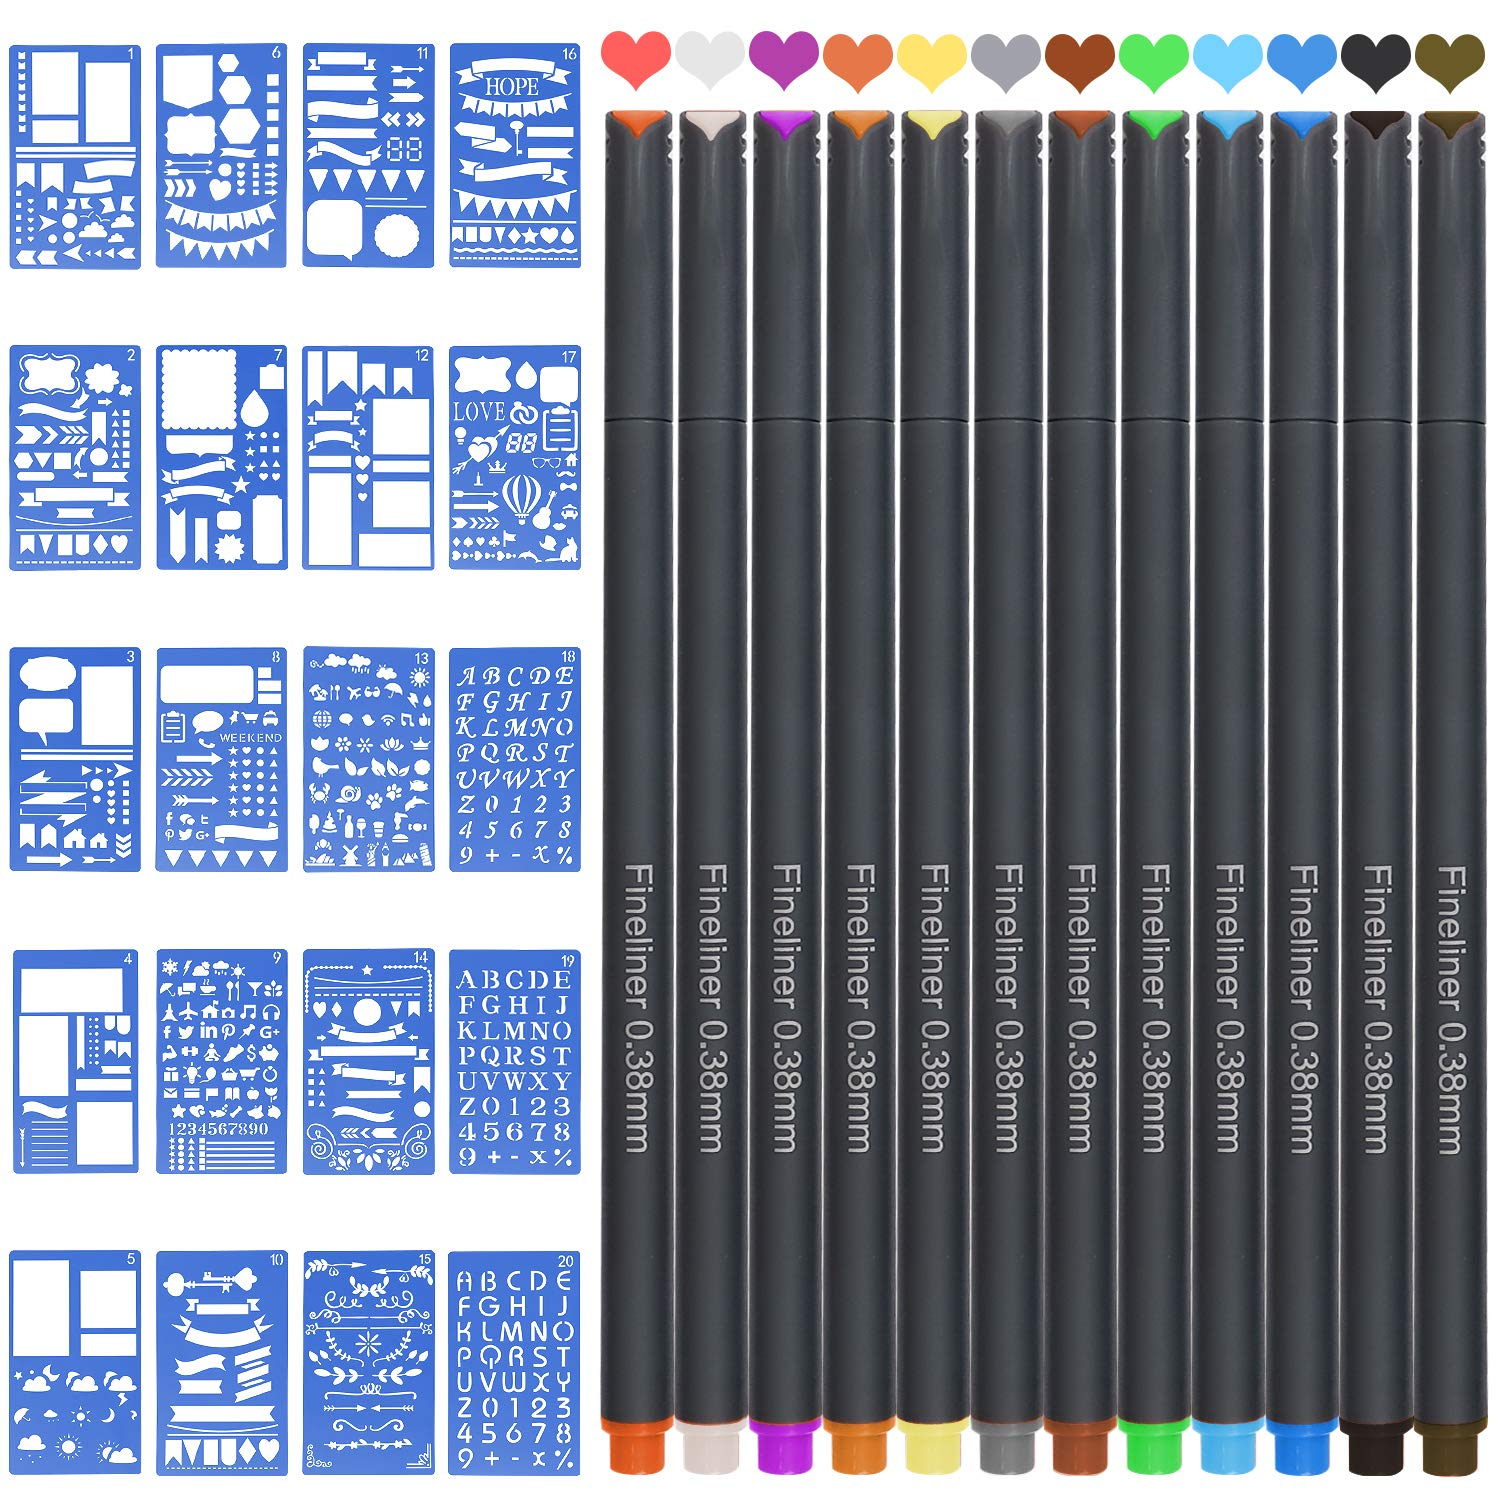 JARLINK Bullet Journal Stencil Kit 12 Colored Pens and 20 Stencils, Plastic Planner Bullet Journal Notebook Diary Scrapbook Supplies 4x7 inches DIY Drawing Templates